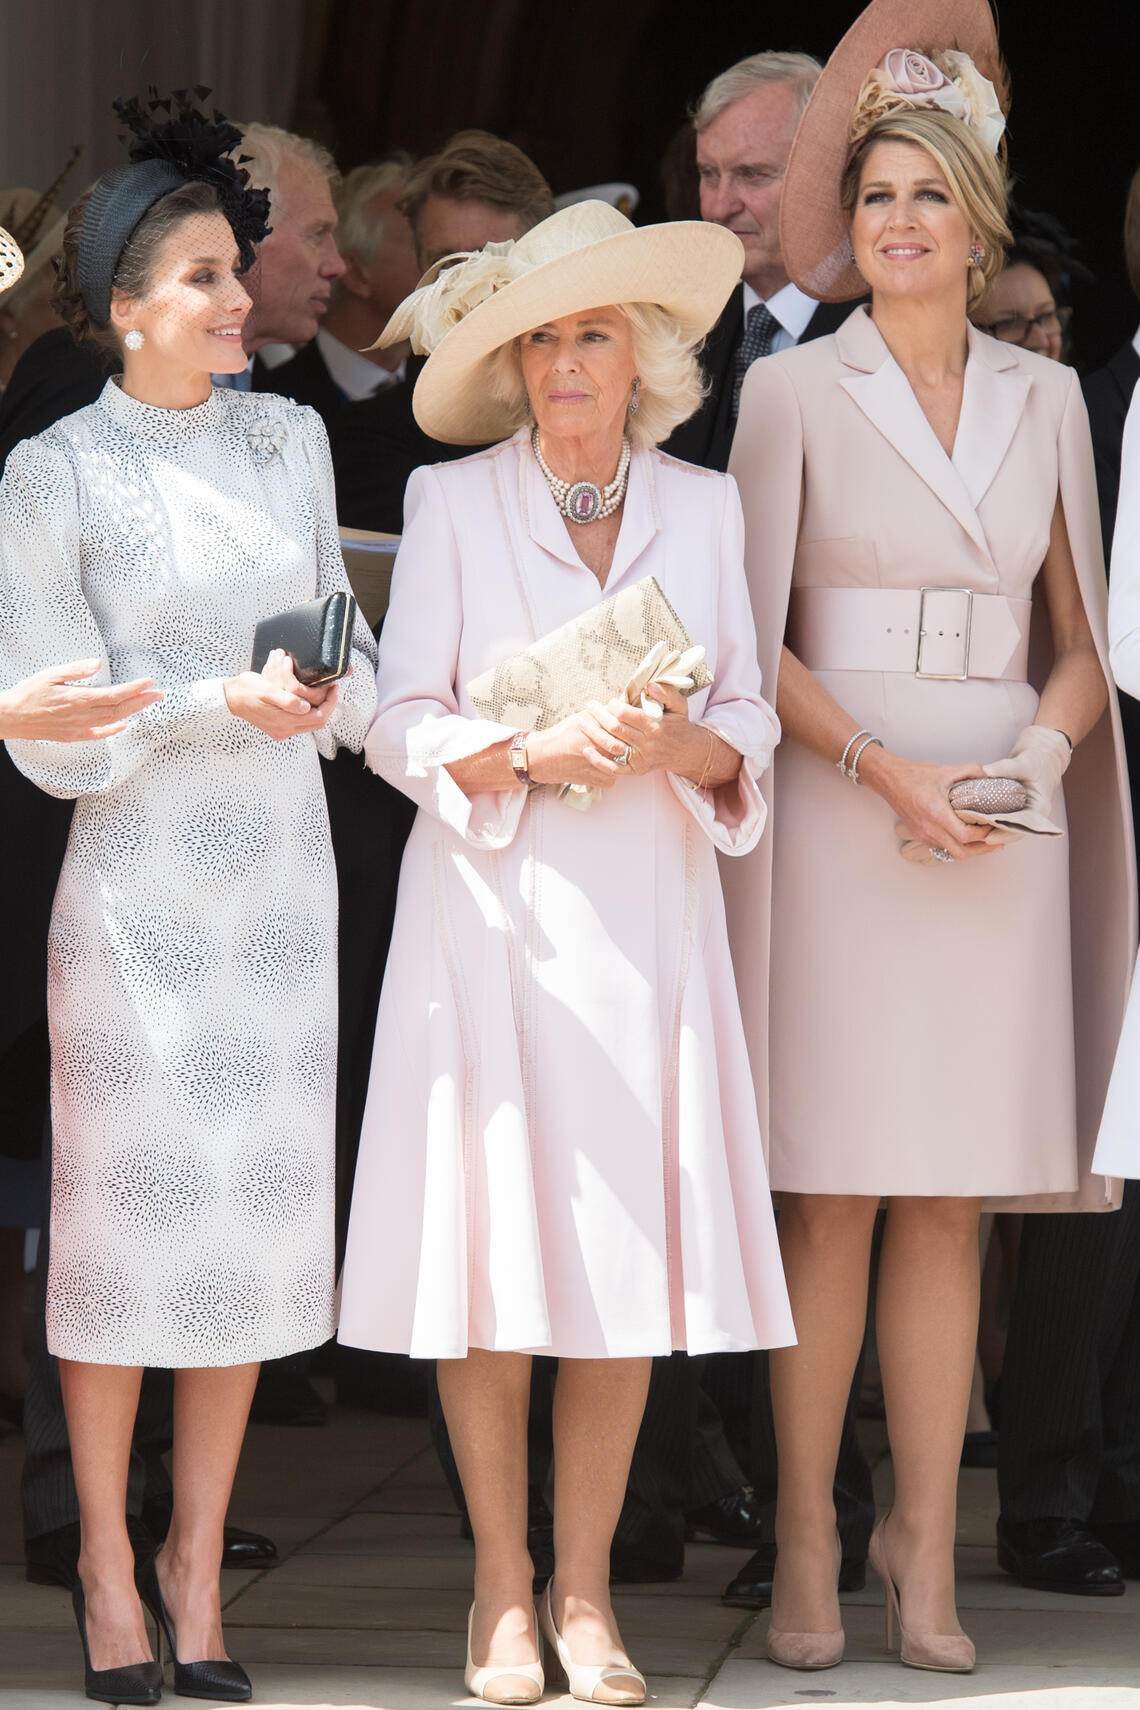 WINDSOR, ENGLAND - JUNE 17:  Queen Letizia of Spain, Camilla, Duchess of Cornwall, Queen Maxima of the Netherlands  attend the Order of the Garter at St George's Chapel on June 17, 2019 in Windsor, England. (Photo by Pool/Samir Hussein/WireImage)